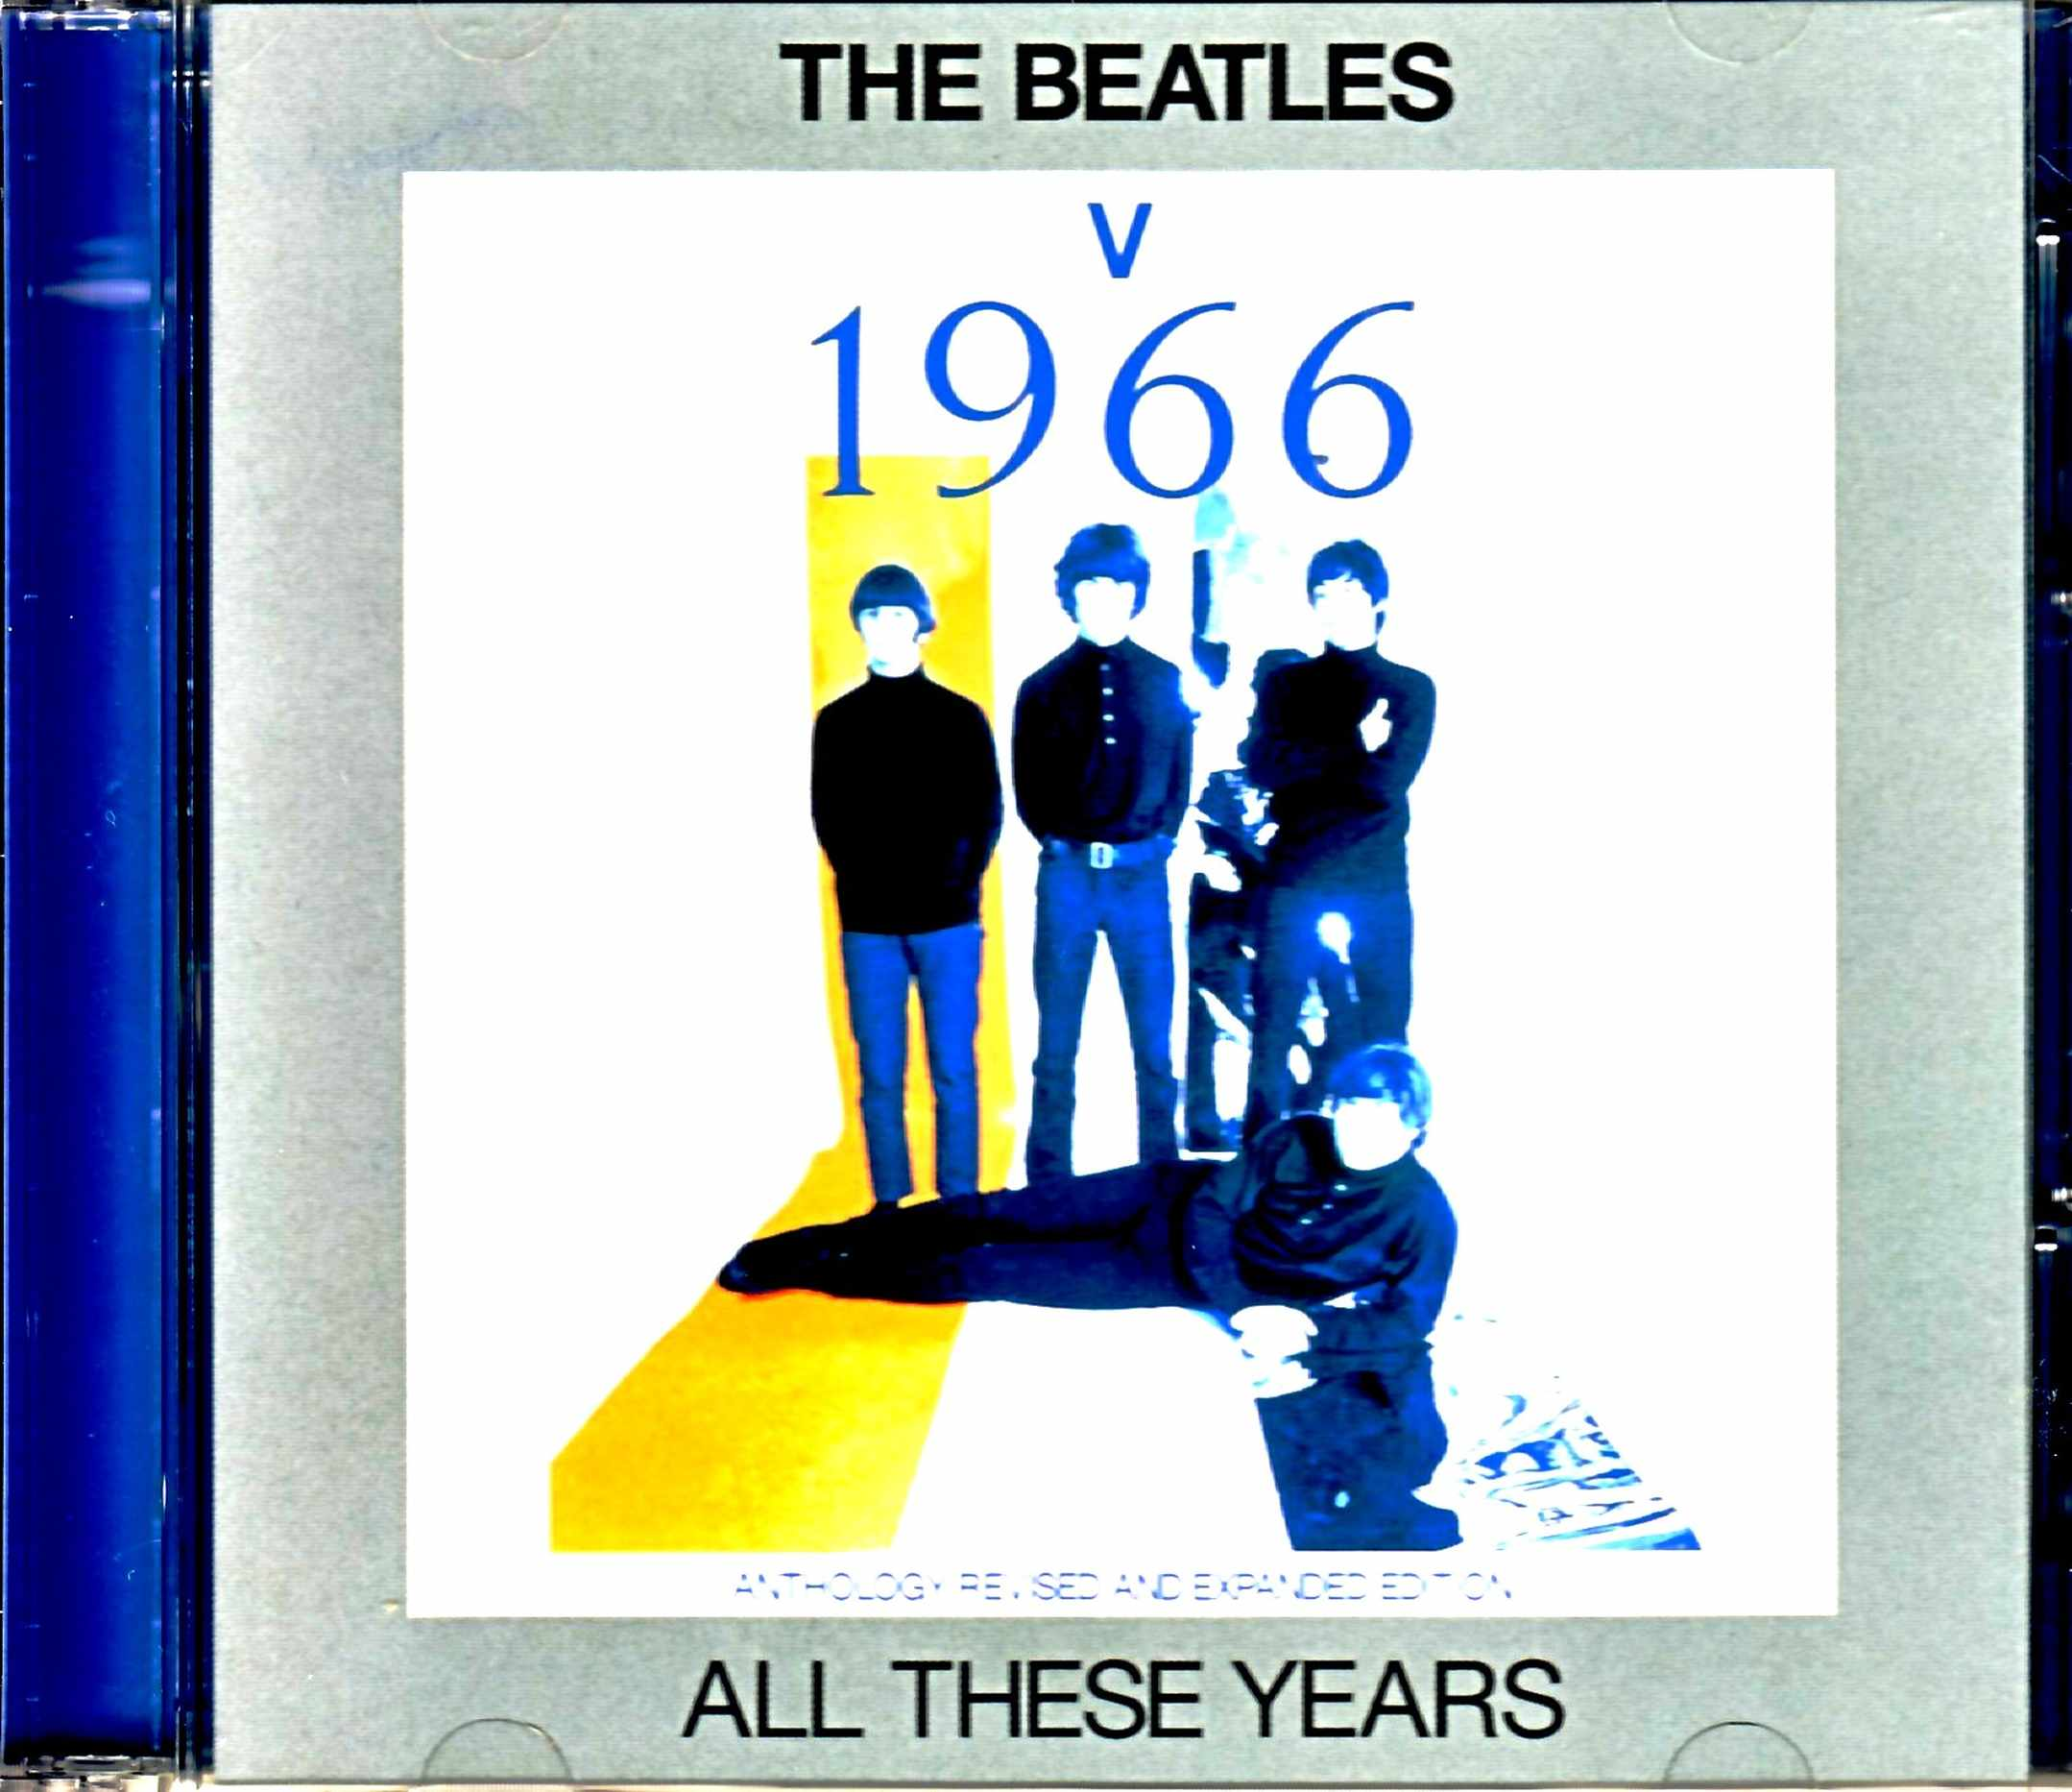 Beatles ビートルズ/Anthology Revised and Expanded Edition 1966